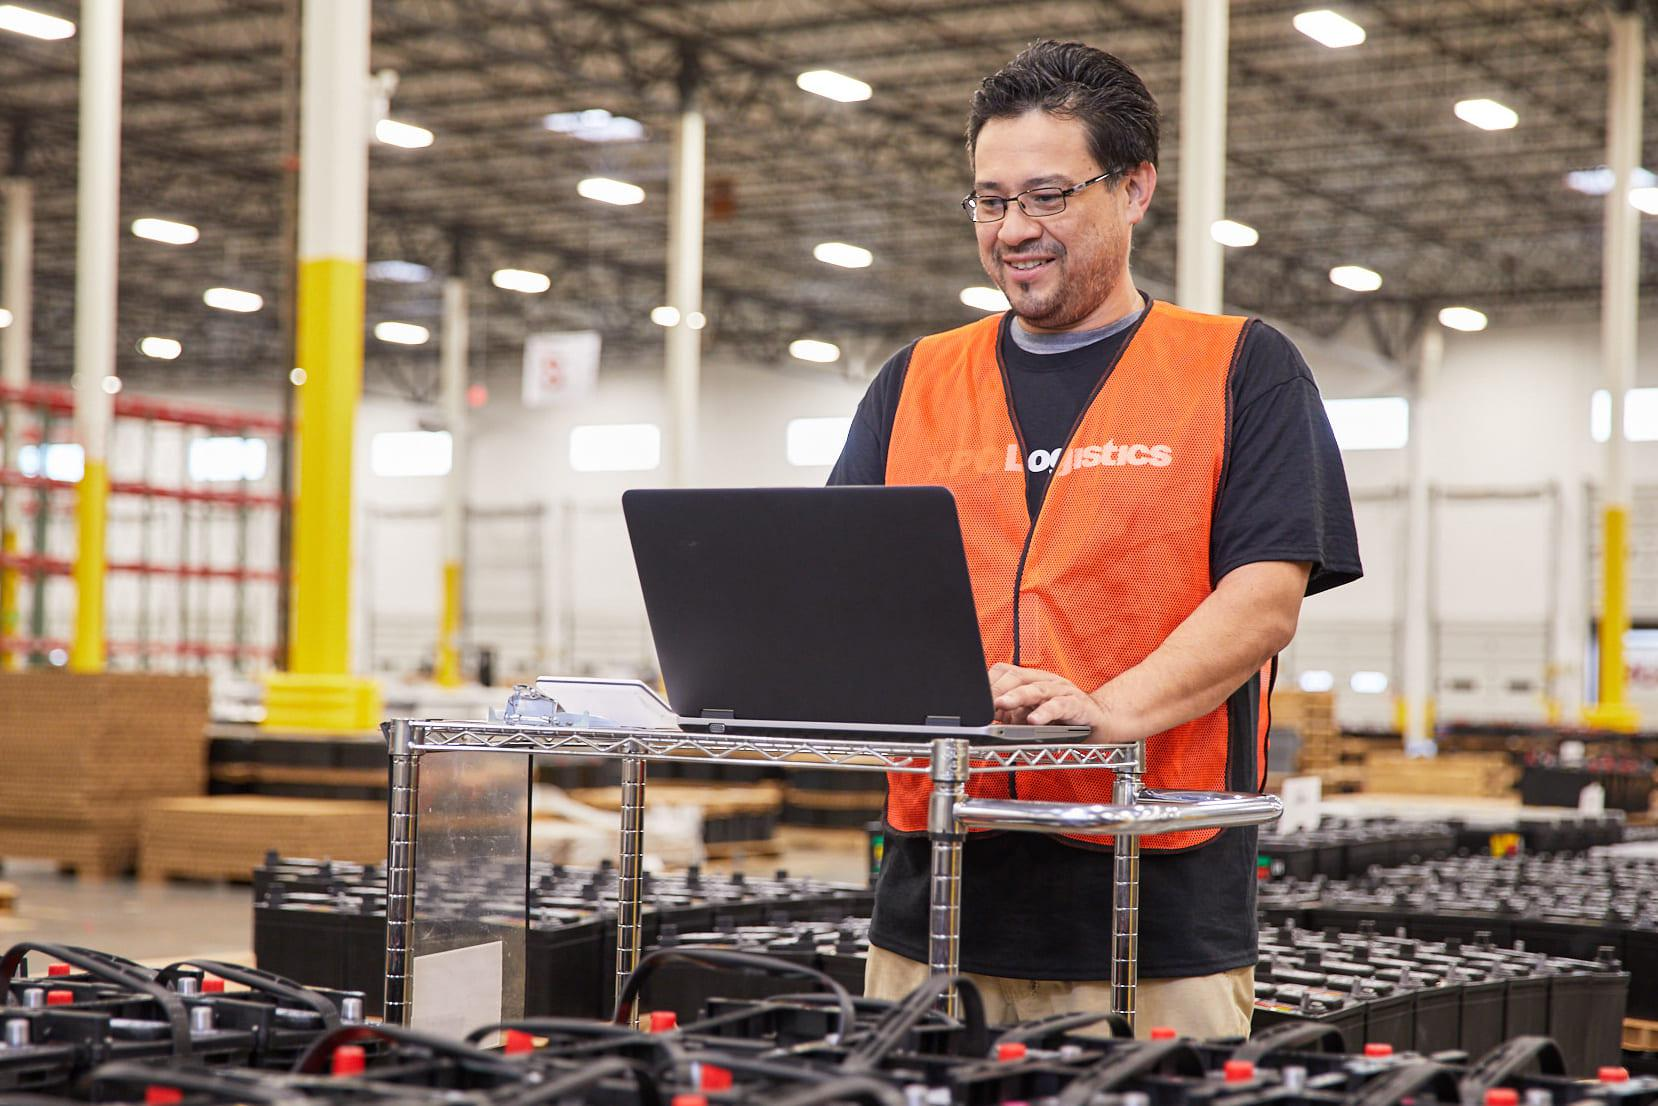 XPO warehouse employee working on computer